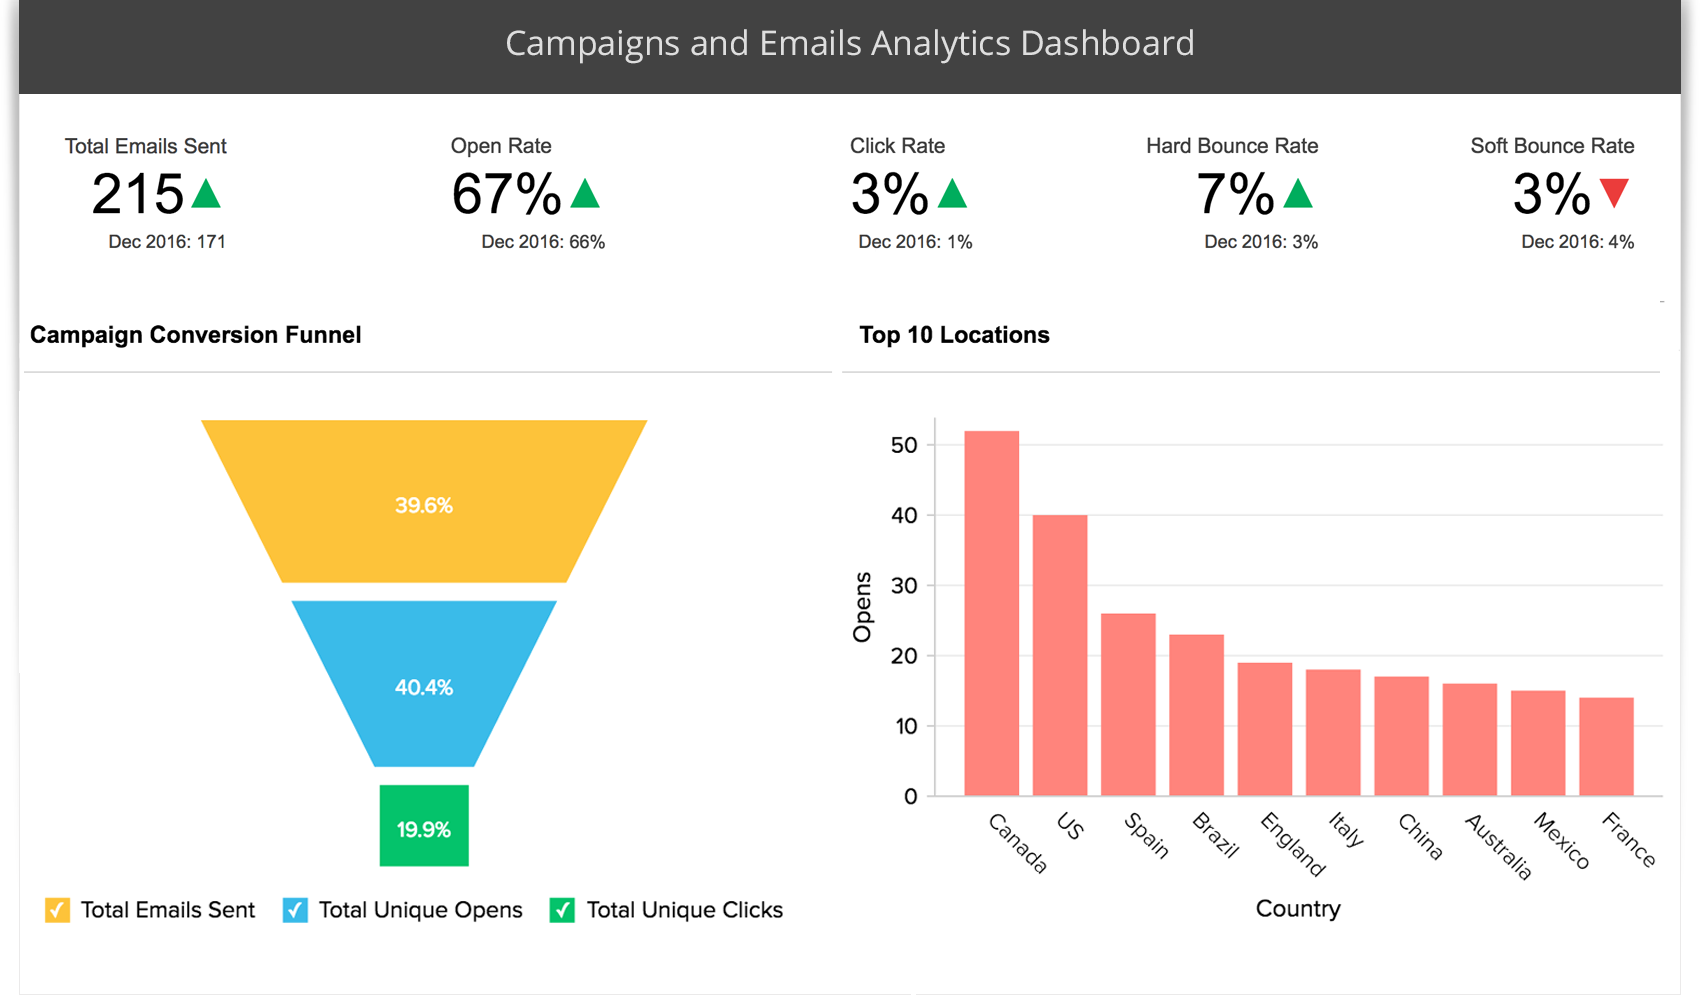 https://www.zoho.com/reports/images/mailchimp-dashboard.png